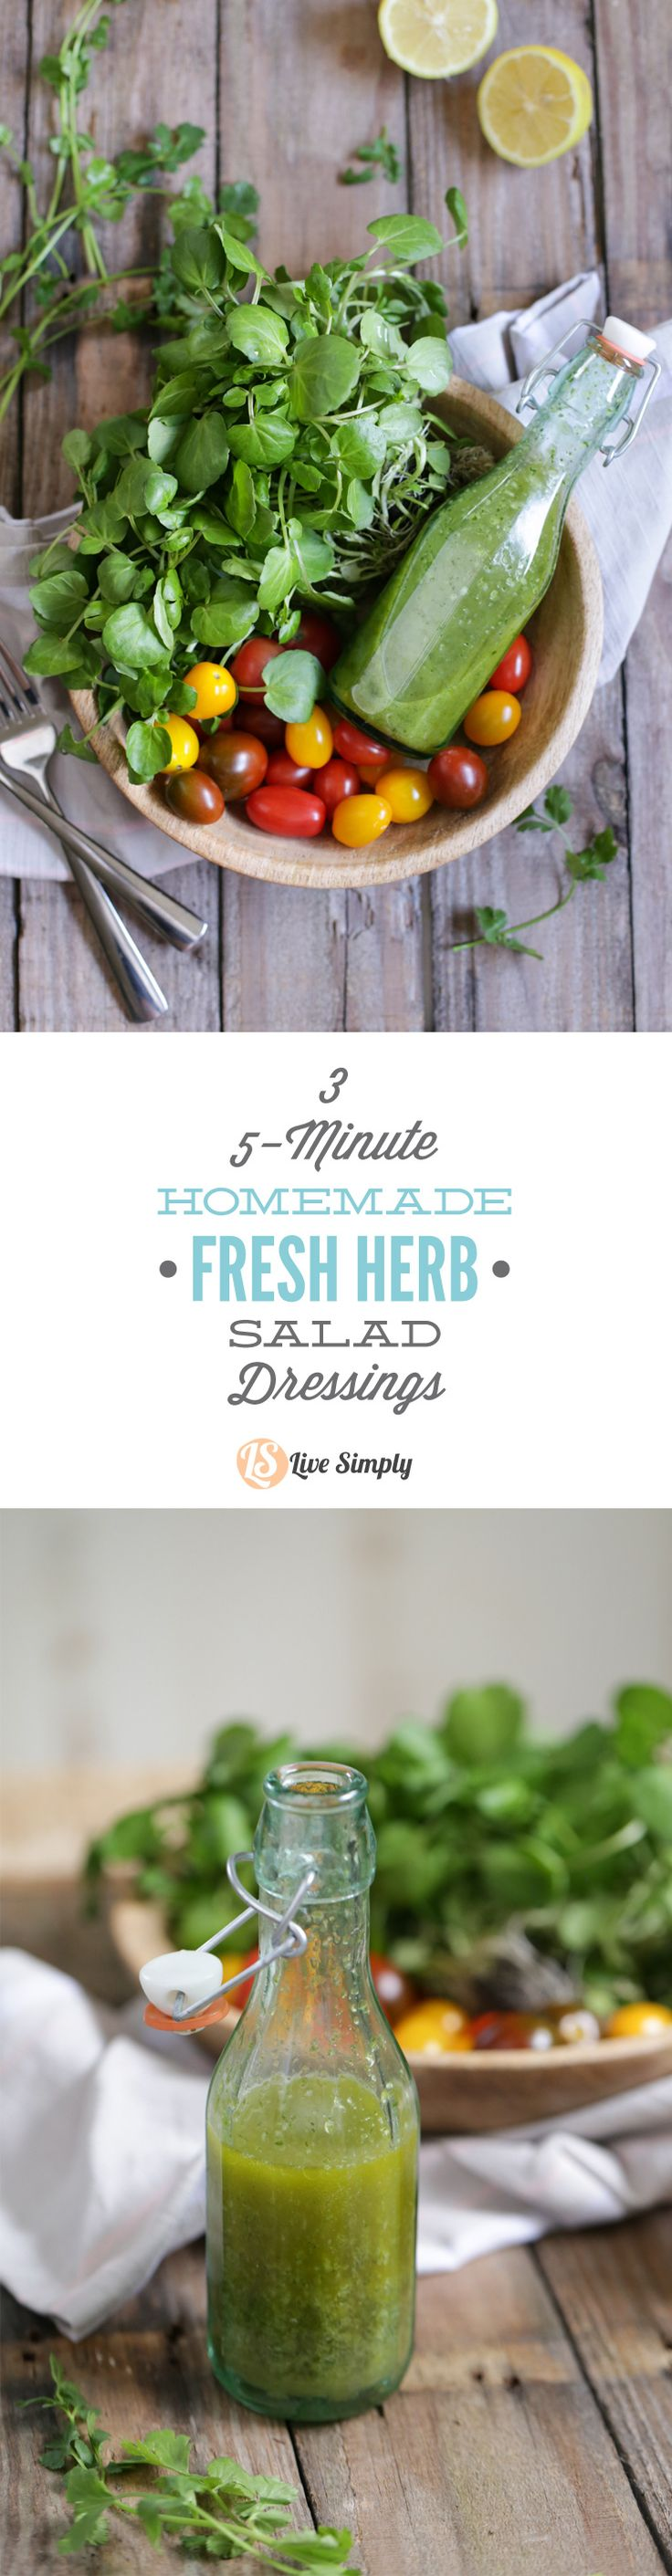 Three healthy homemade salad dressings you can make at home with fresh herbs! Three salad dressing recipes that require 5 minutes or less to make, from start to finish!  http://livesimply.me/2015/03/15/3-five-minute-fresh-herb-salad-dressings/